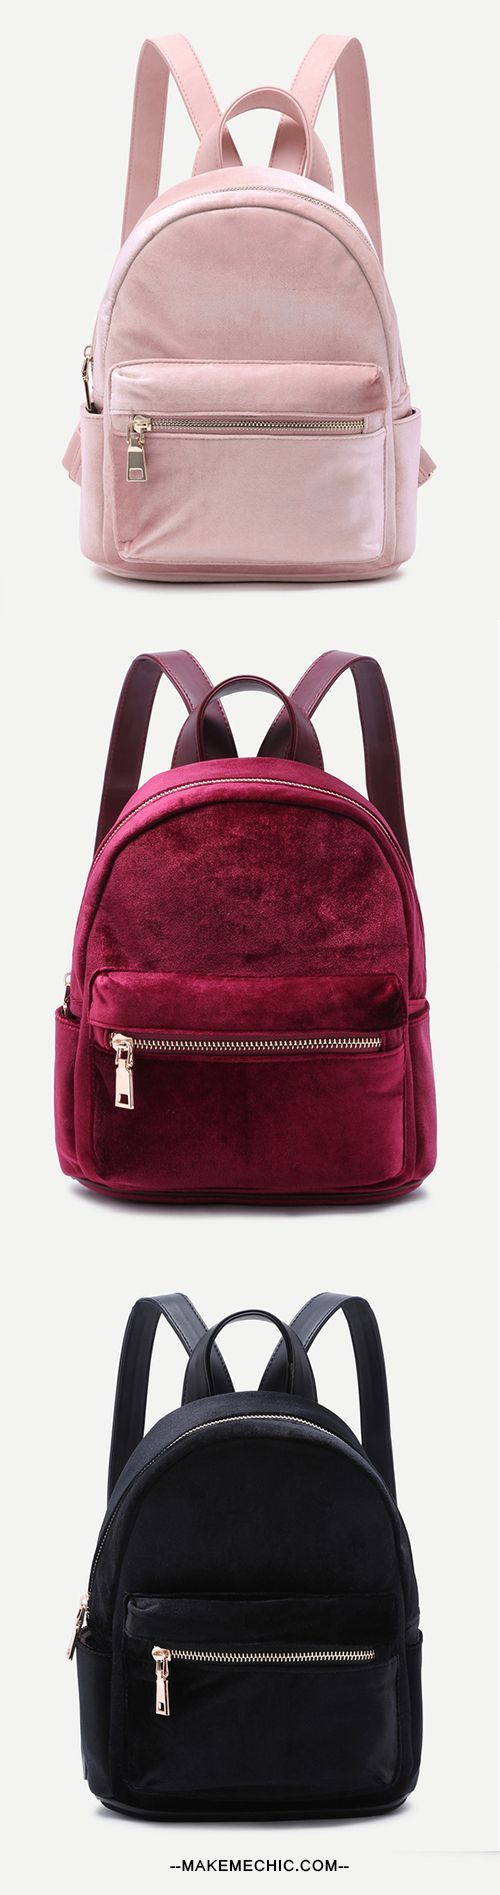 We're seriously crushing on the Mini Metallic Zip Velvet Backpack! Features a velvet upper, metallic zipper, and adjustable straps. One size fits most.